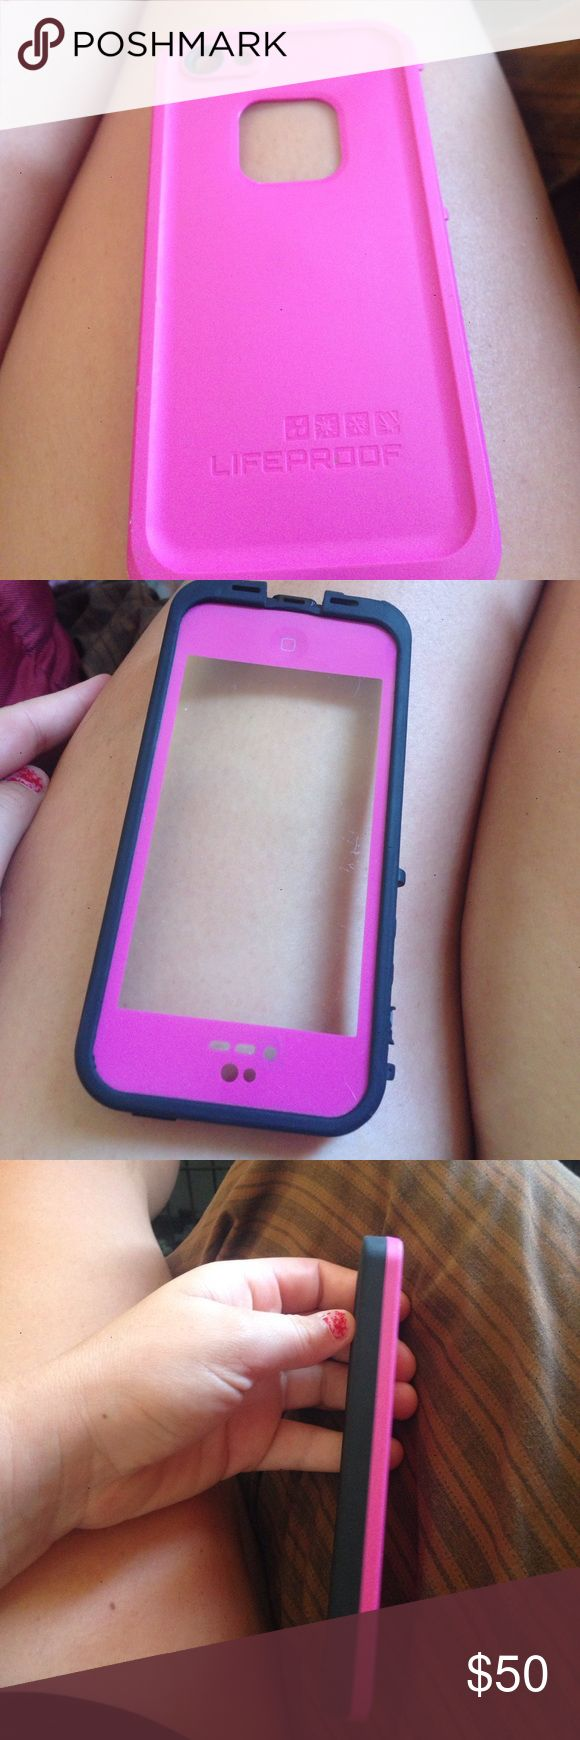 Life proof case for iPhone 5/5c Pink and black life proof case for a iPhone 5/5c LifeProof Other